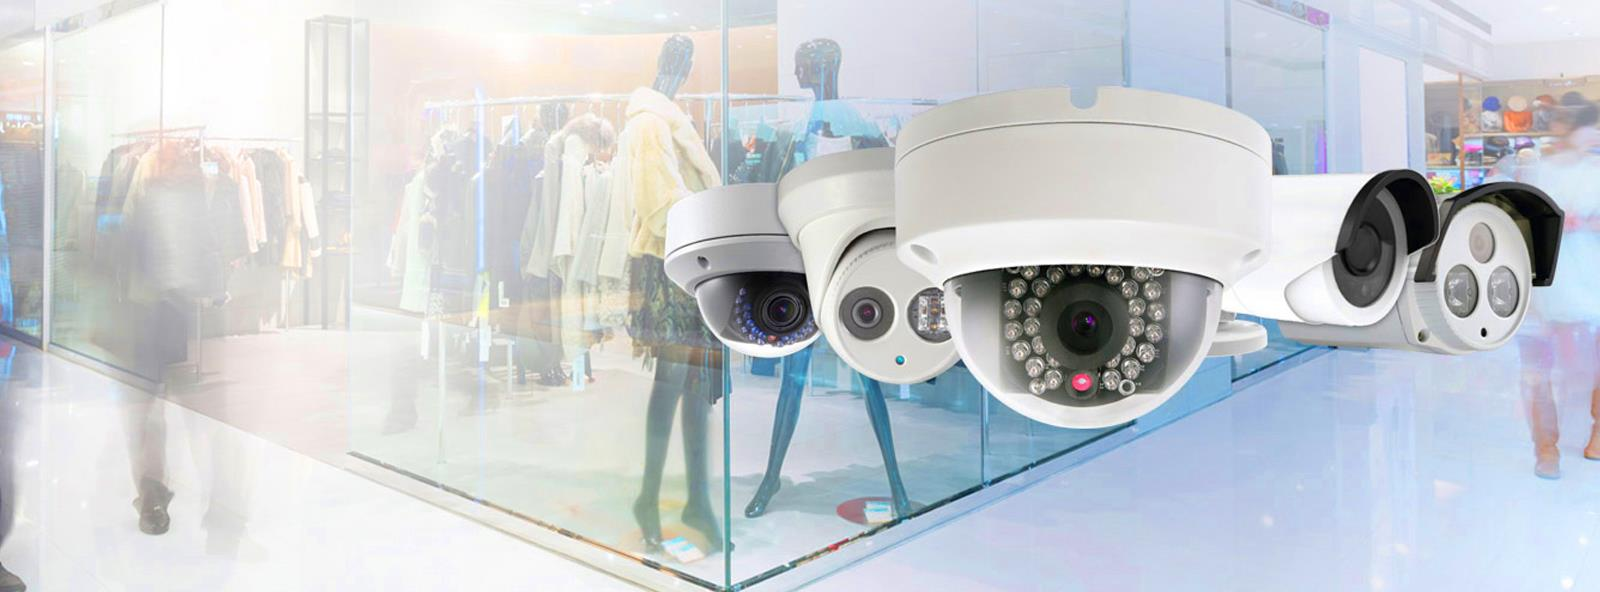 100 % subsidiary of Came Group which is one of the recognized leaders in inthe world in the field of CCTV Security Cameras and security Solutions for residential and industrial, develops systems for parking management and access control for - by Sky Infotech +91-9999039575, South West Delhi